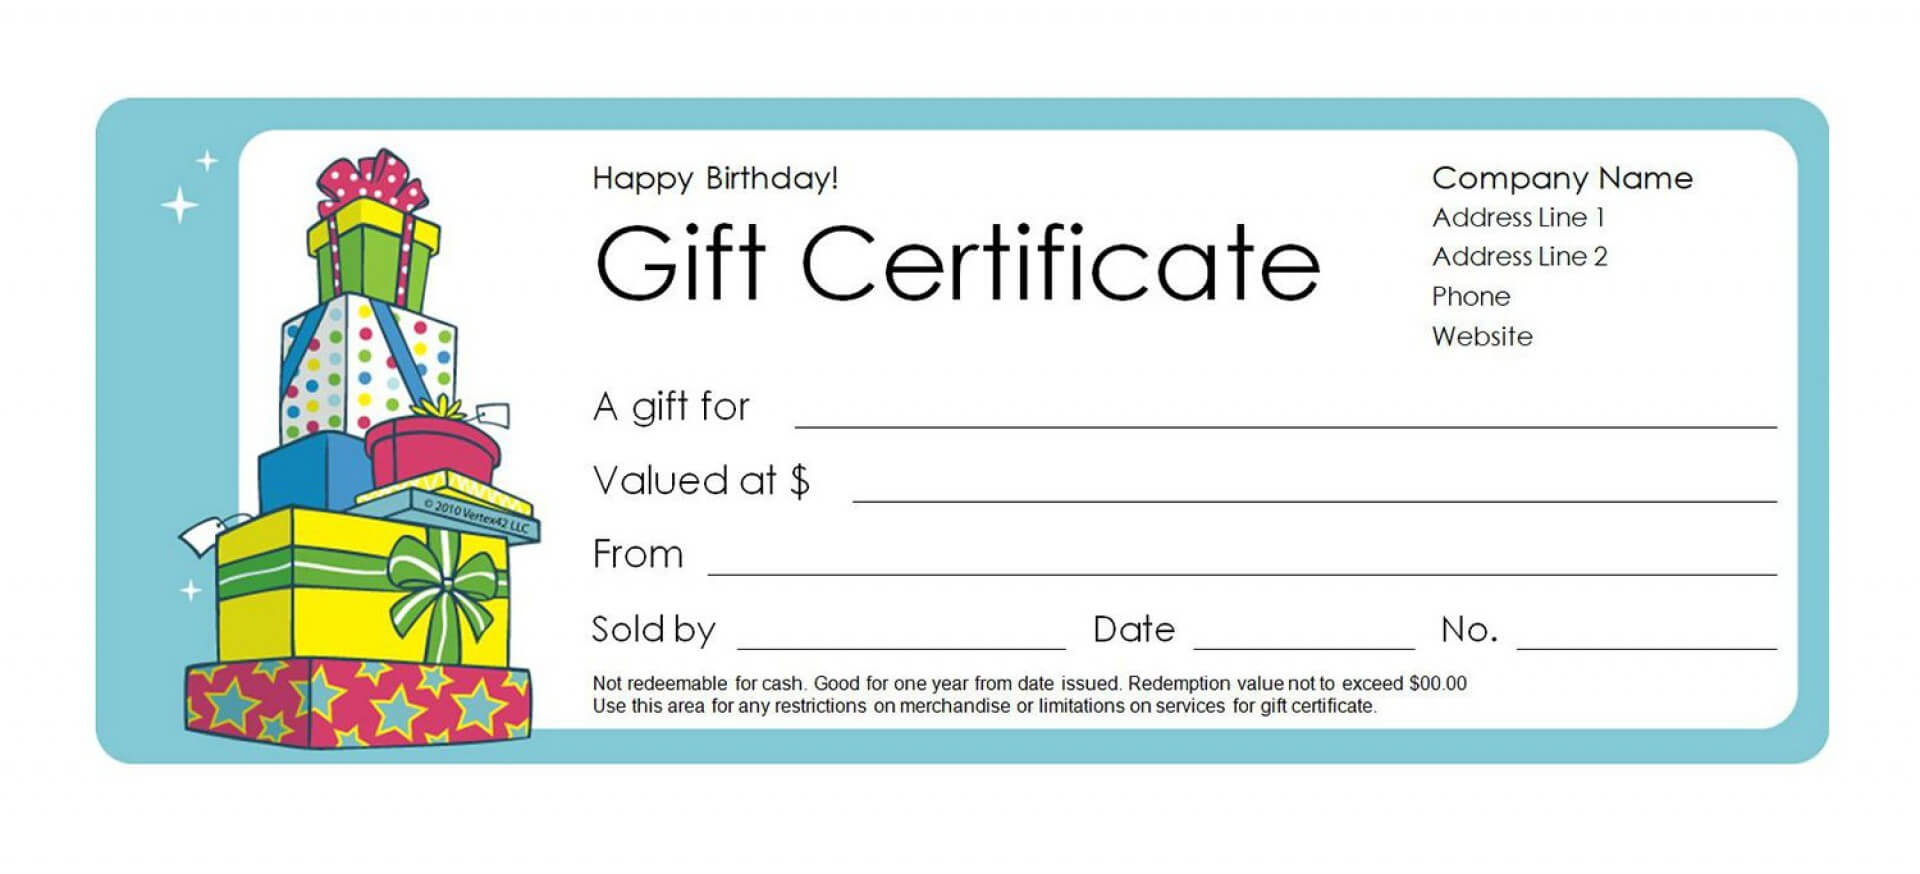 045 Gift Certificate Template Pages Printable Super Star With Regard To Star Certificate Templates Free